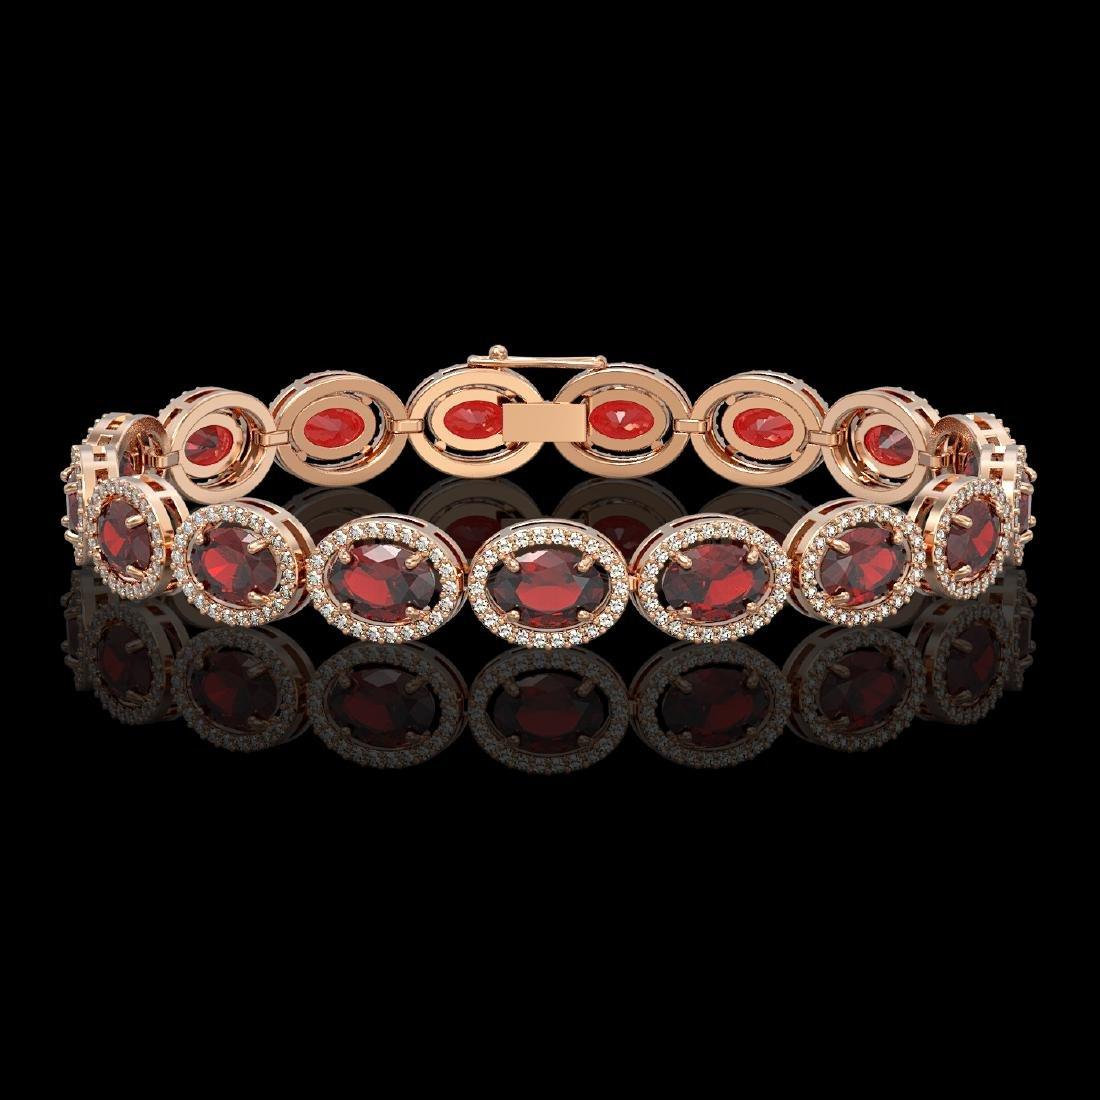 21.98 CTW Garnet & Diamond Halo Bracelet 10K Rose Gold